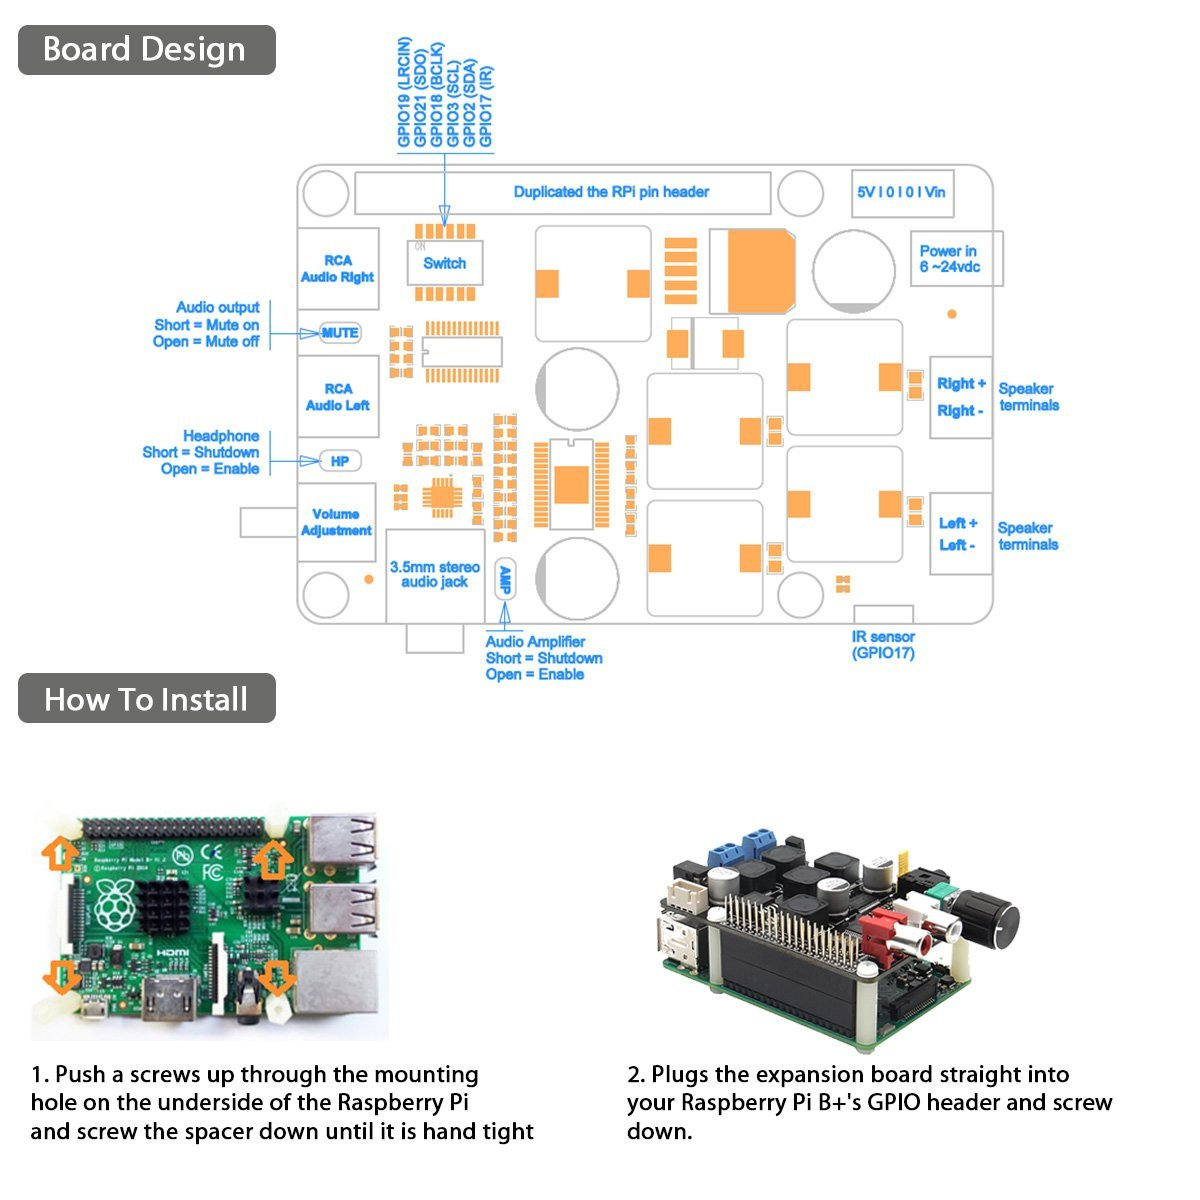 Multifunktions X400 Expansion Board Fr Elektronik Raspberry Pi Wiring Diagram On Capacitor As Speaker Crossover